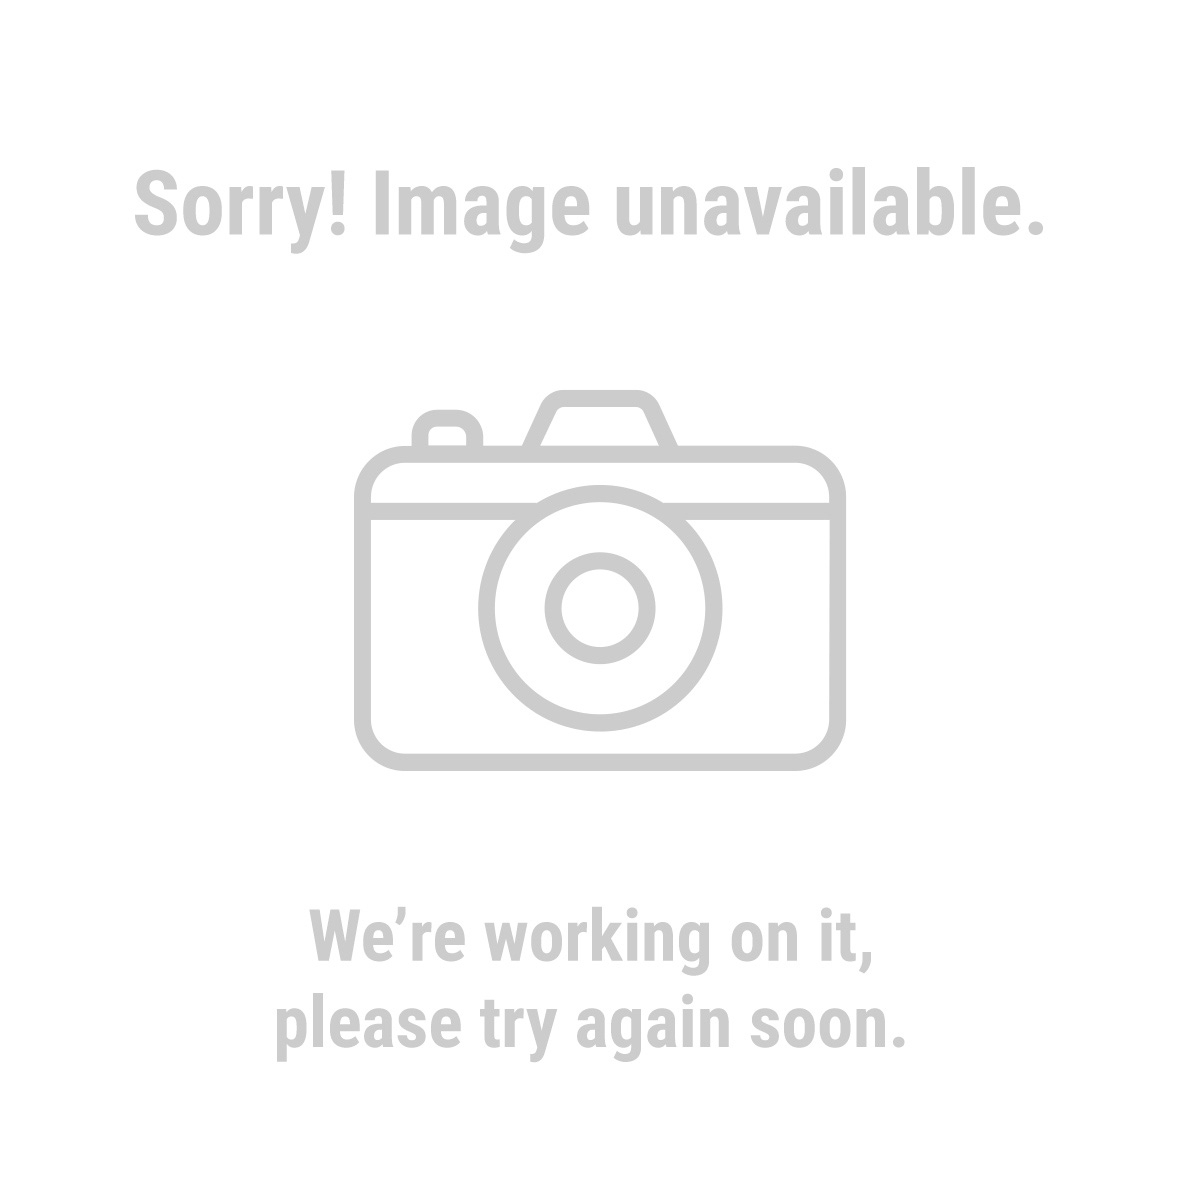 Storehouse 41949 20 Piece Poly Bins and Rails